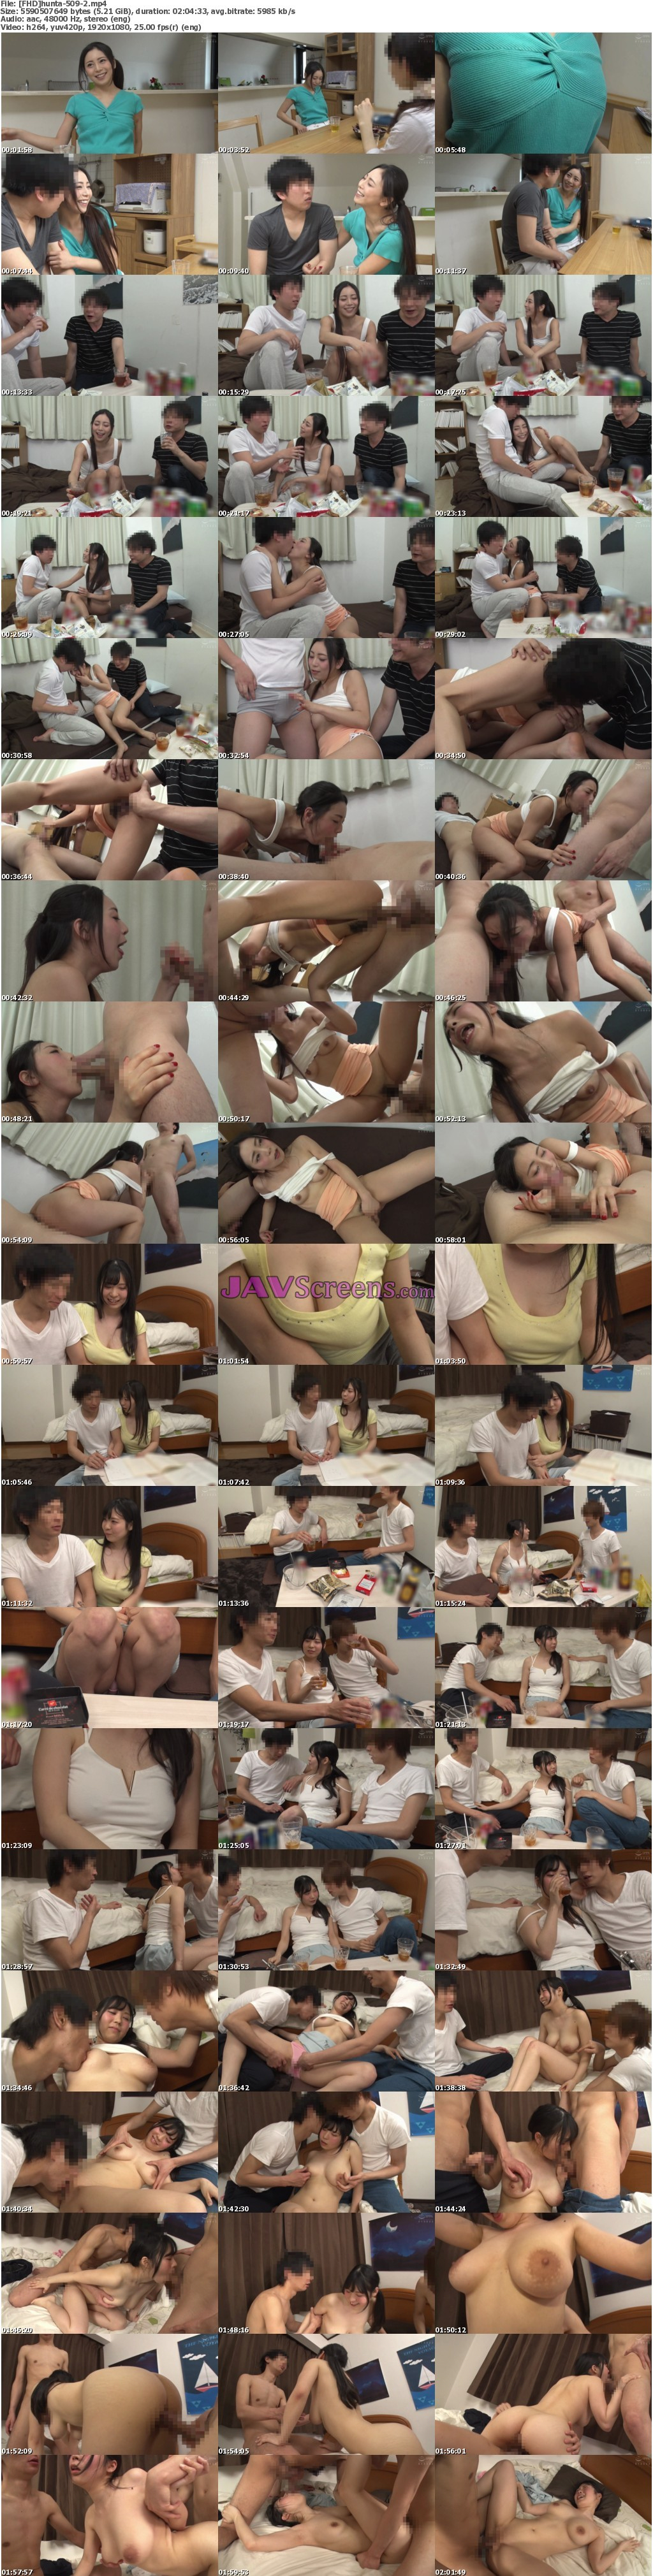 HUNTA-509B.jpg - JAV Screenshot